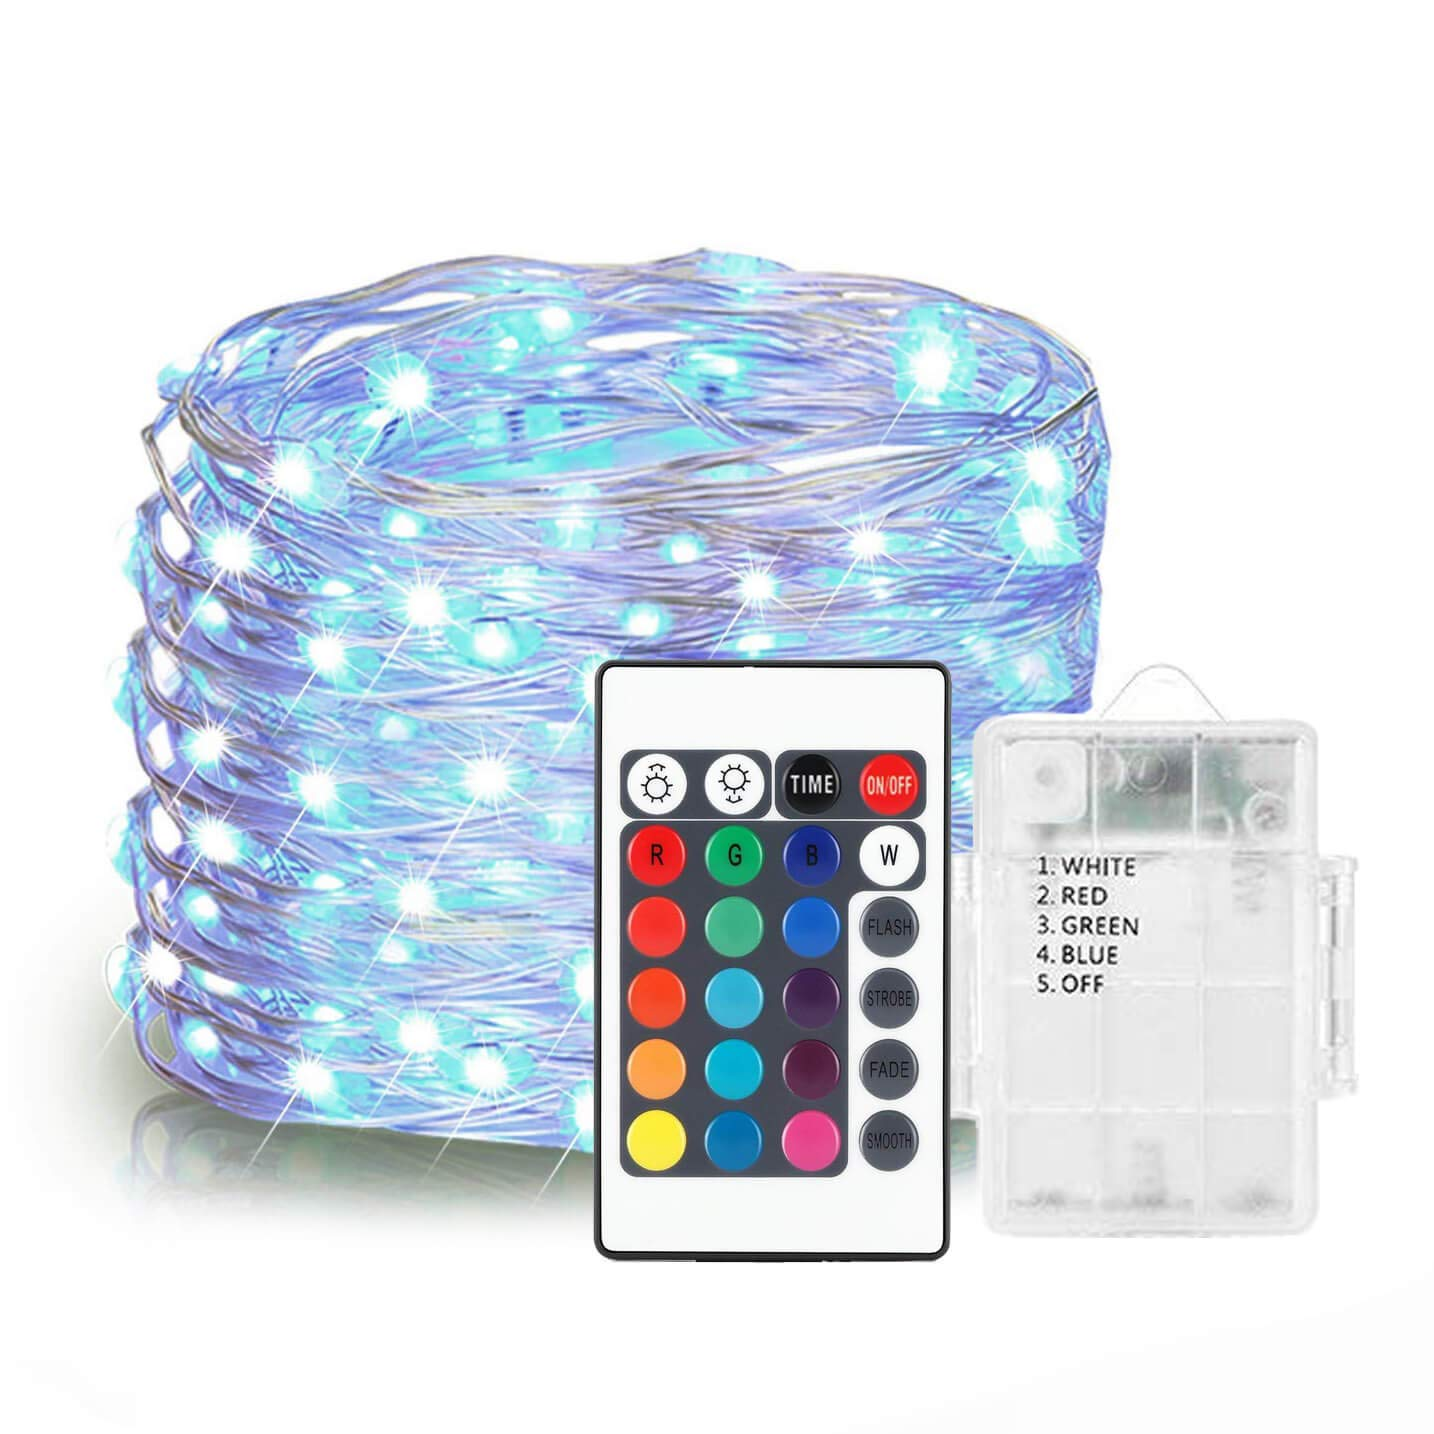 ALOVECO LED String Lights, 14.8ft 40 LED Waterproof Ball Lights, 8 Lighting Modes, Battery Powered Starry Fairy String Lights for Bedroom, Garden, Christmas Tree, Wedding, Party(Multi Color) SYNCHKG099897